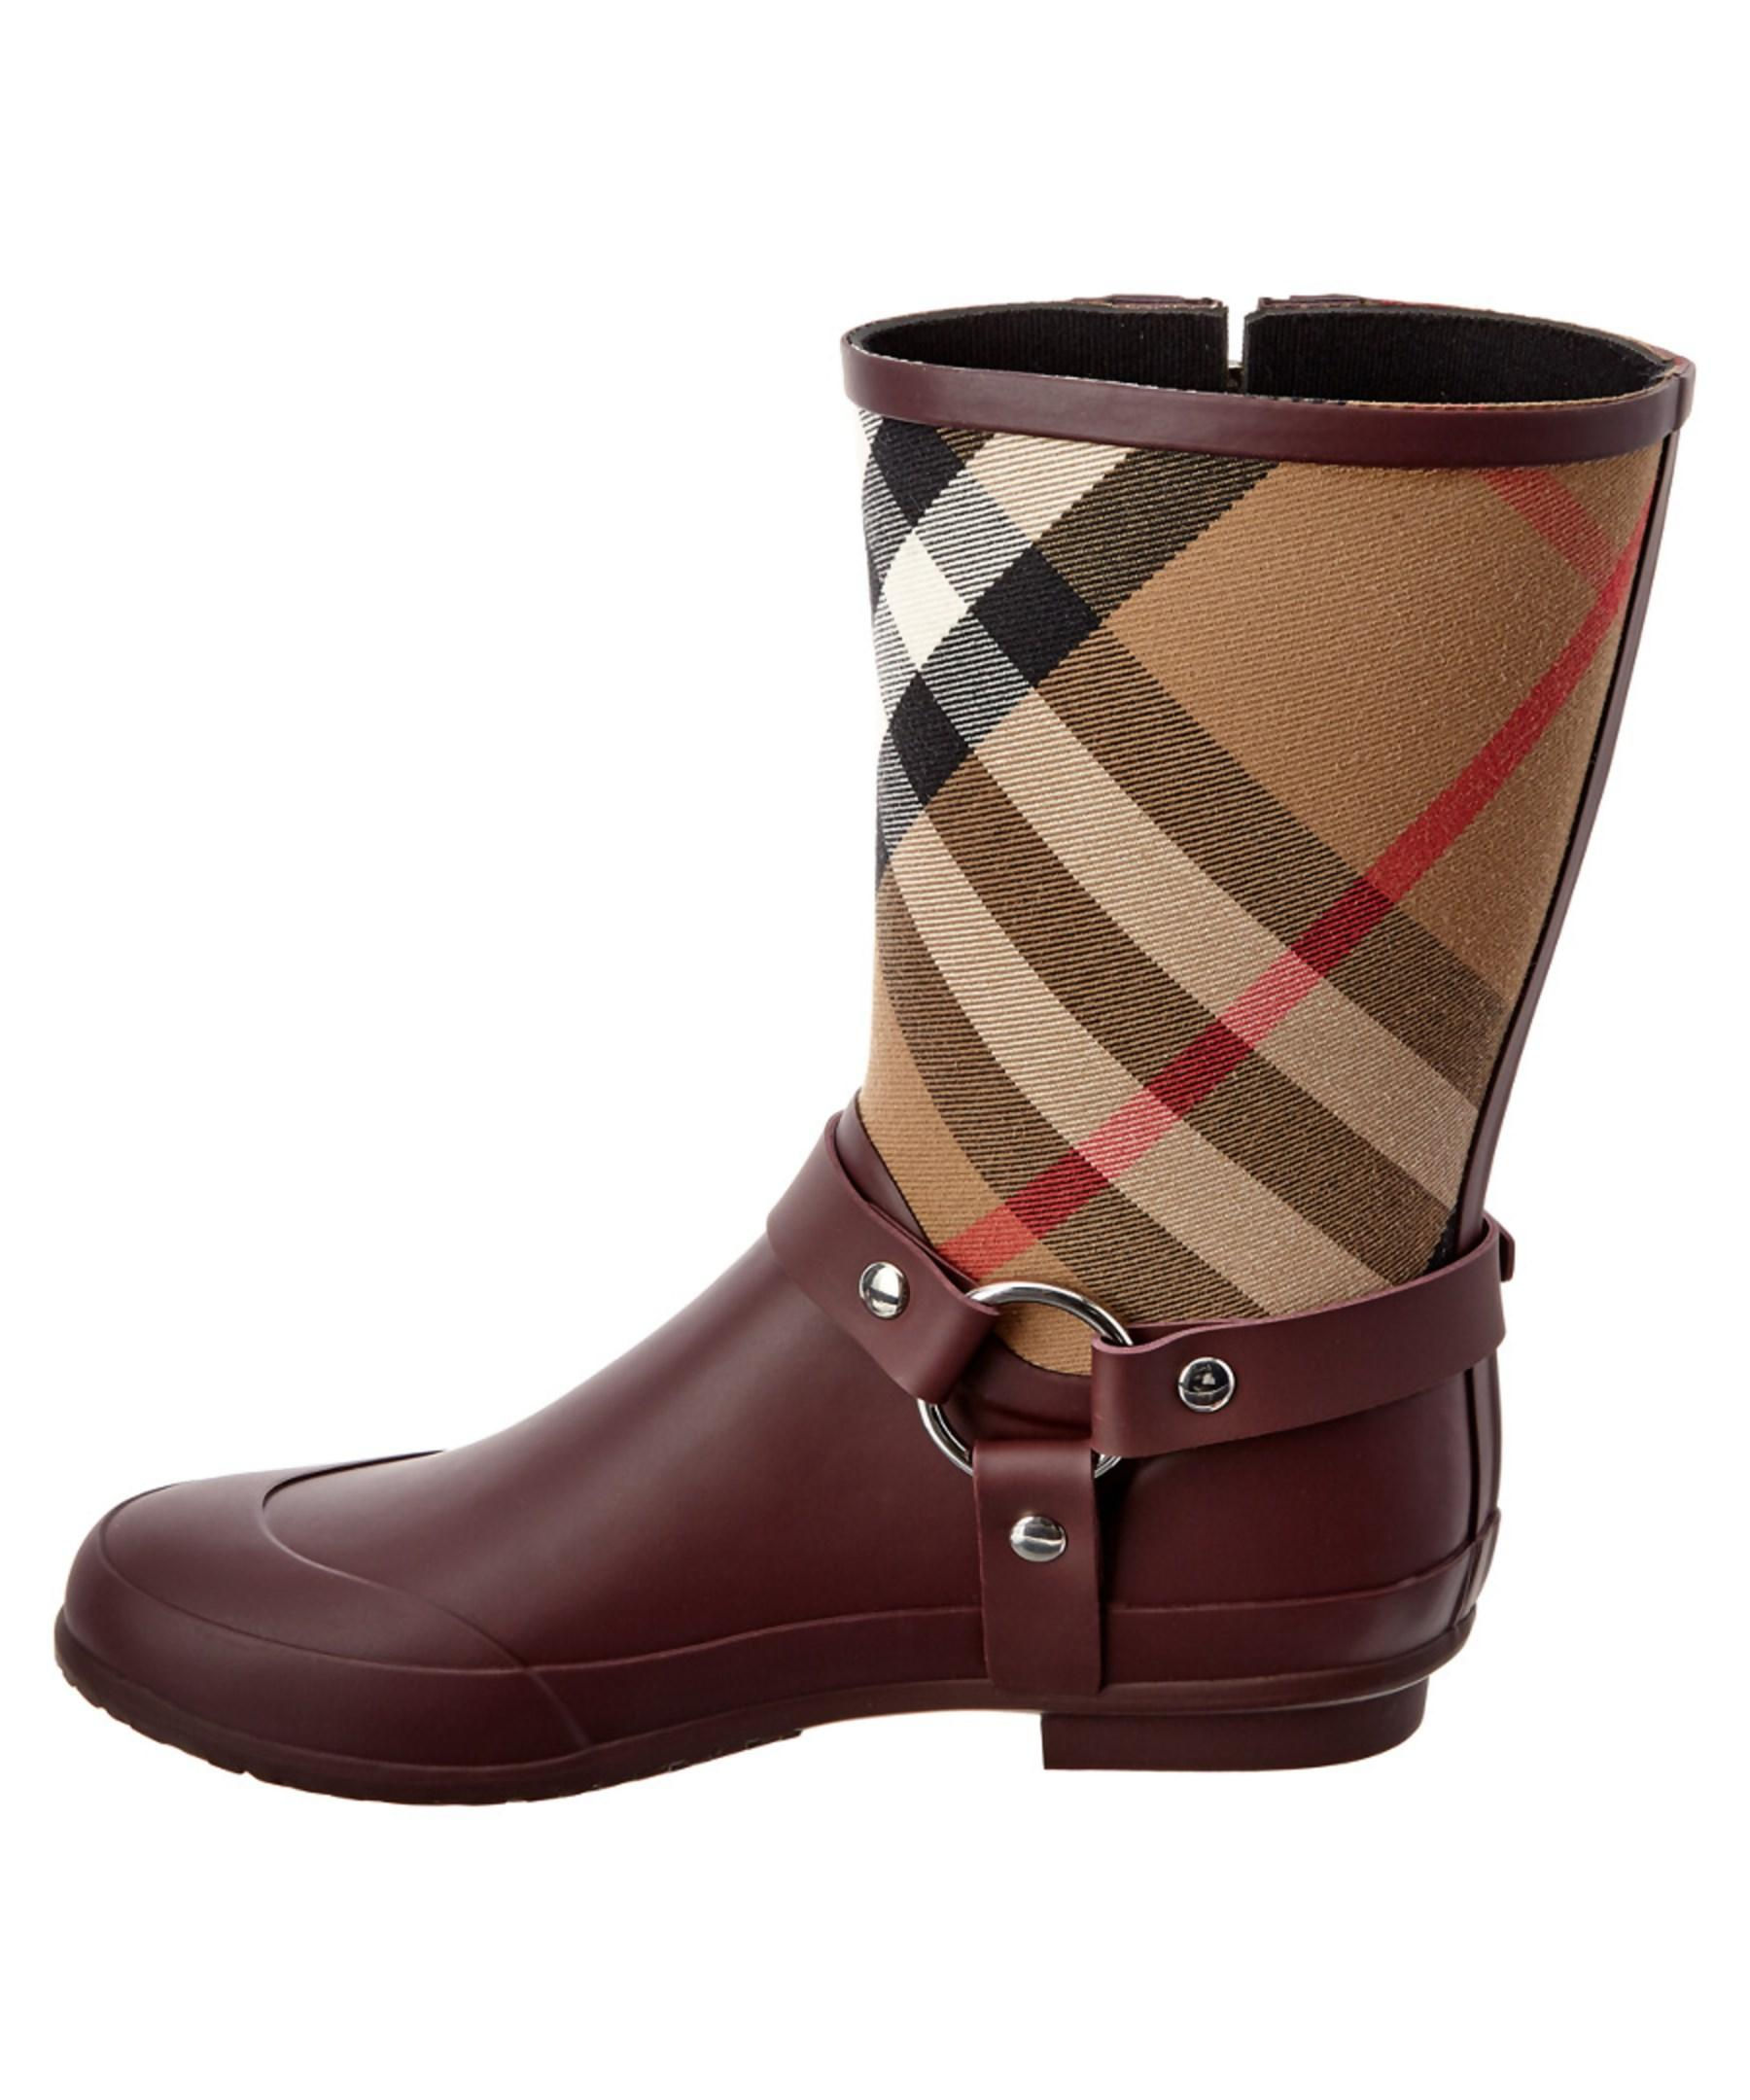 how to clean burberry rain boots